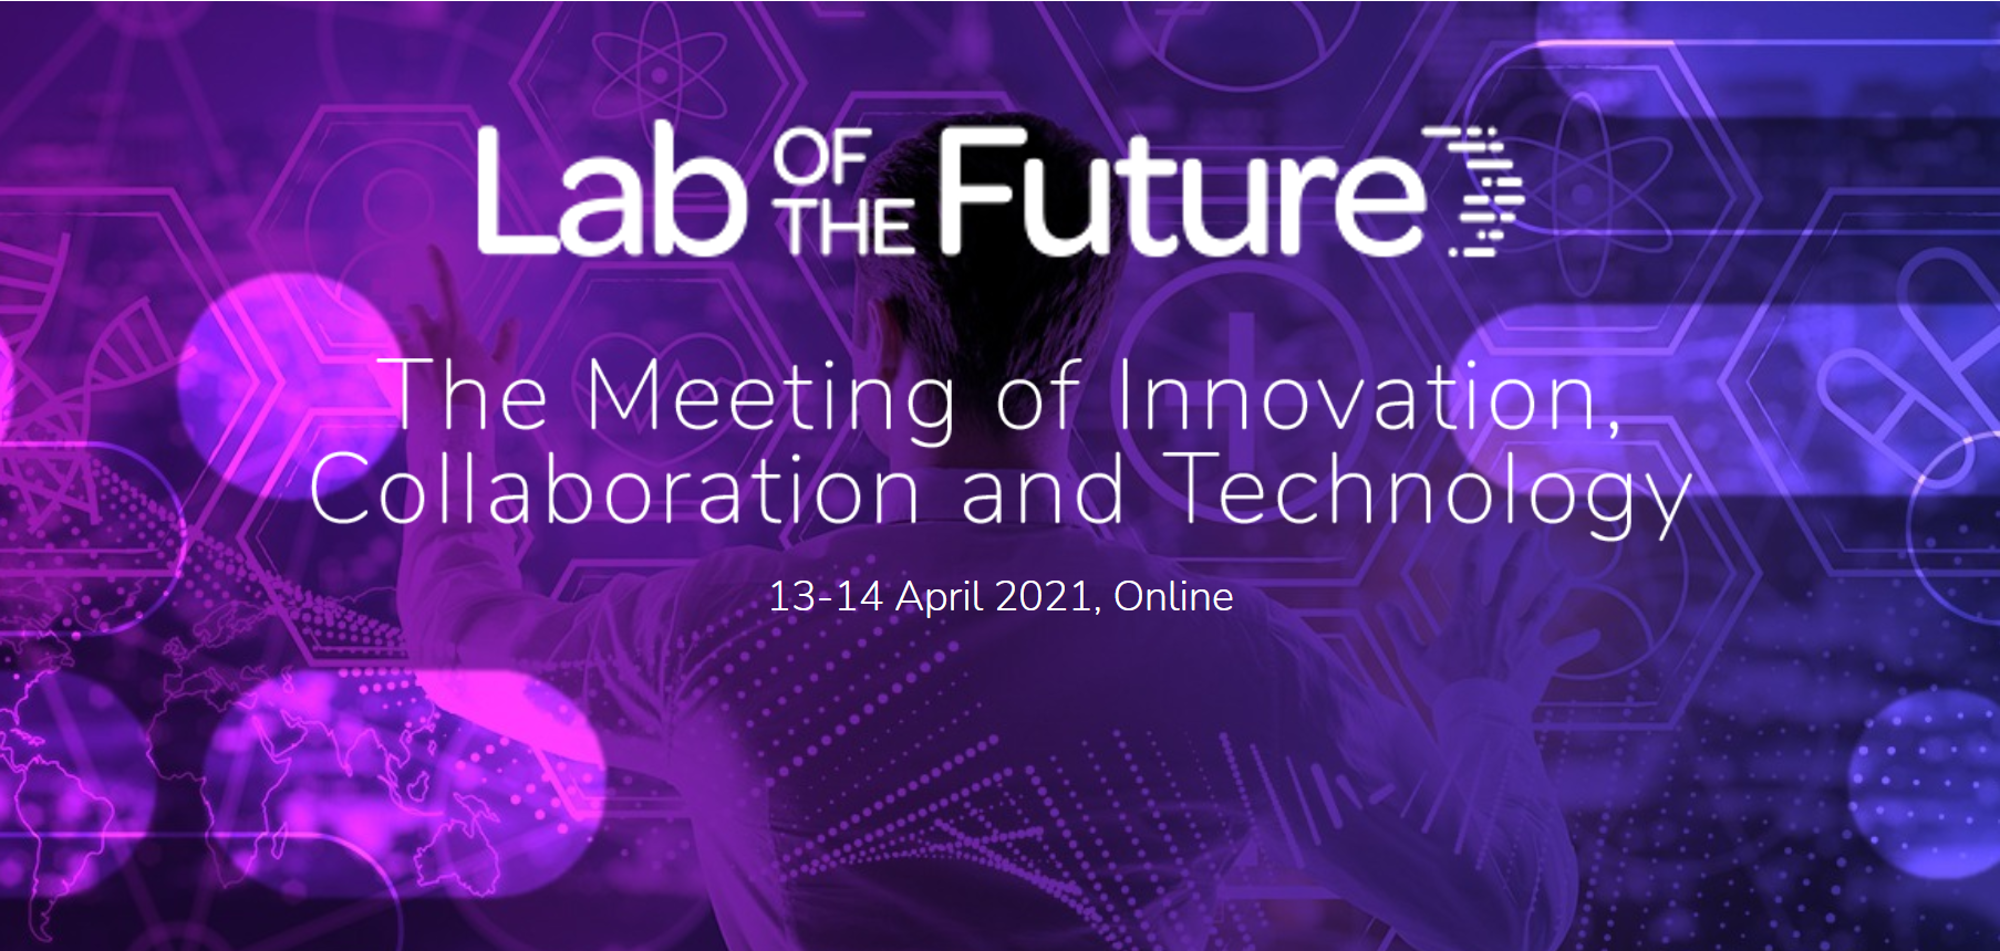 Lab of the Future - April 2021